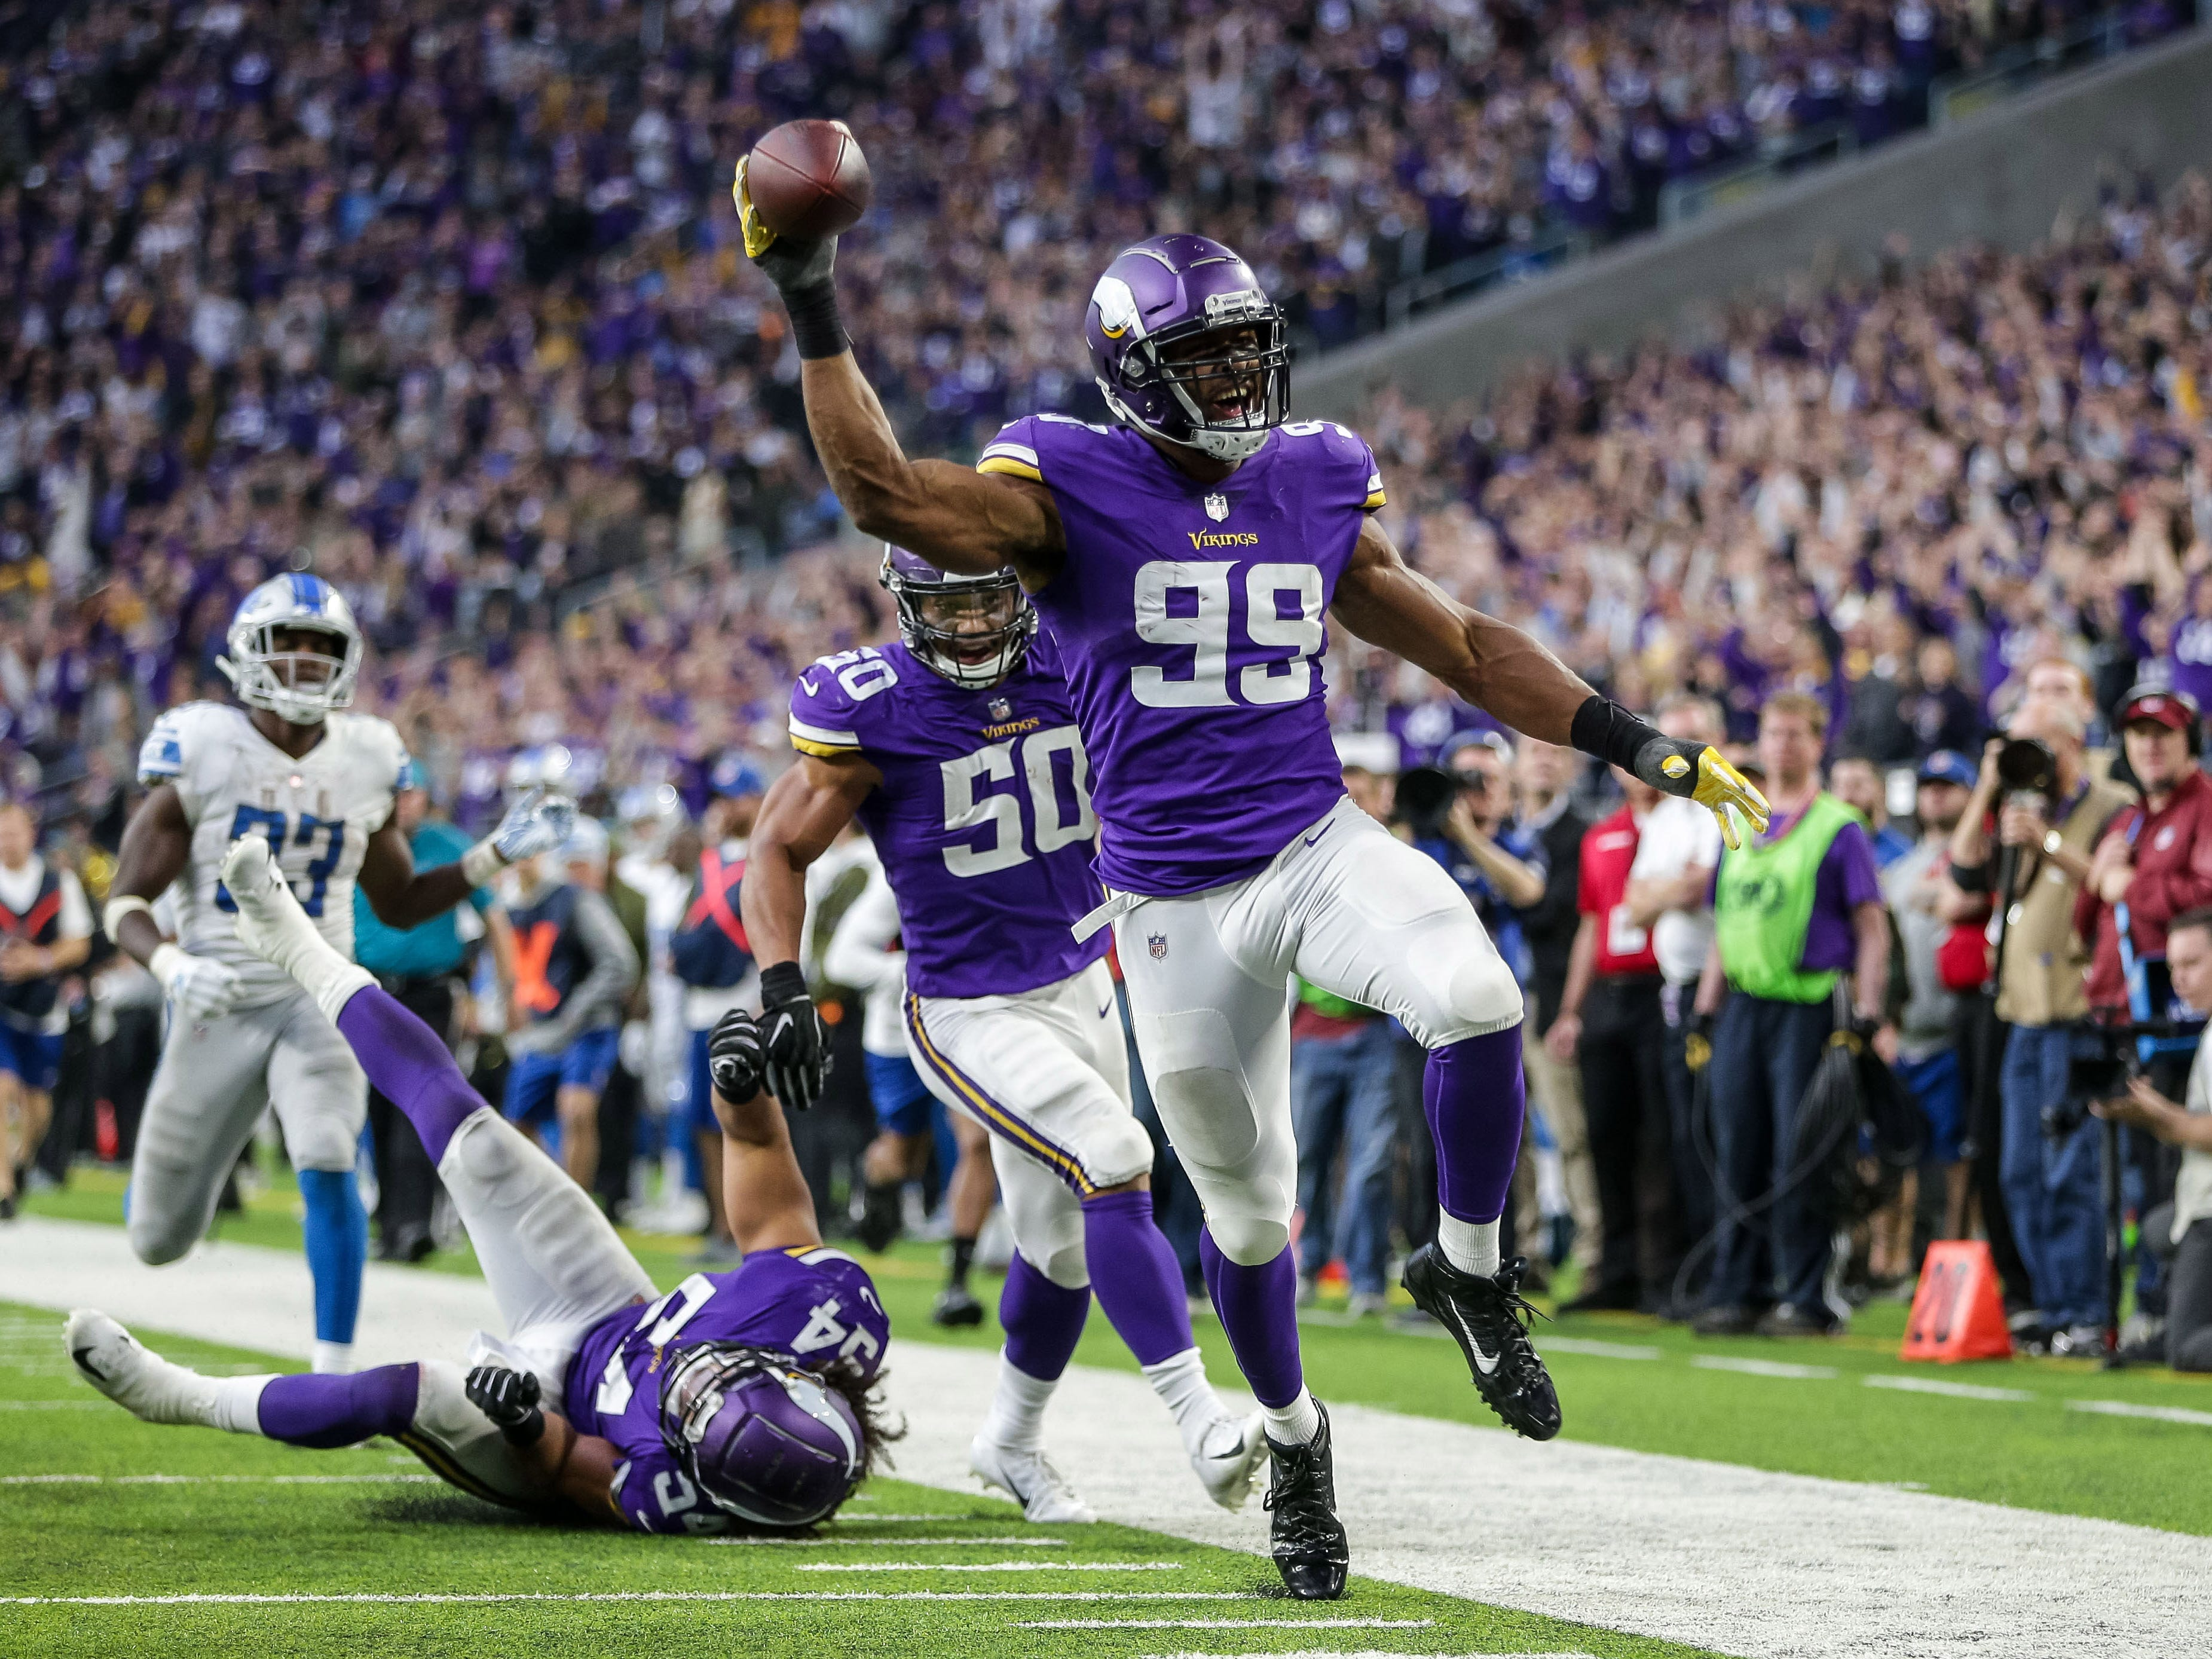 Minnesota Vikings defensive end Danielle Hunter (99) returns a fumble for a touchdown during the fourth quarter against the Detroit Lions at U.S. Bank Stadium.